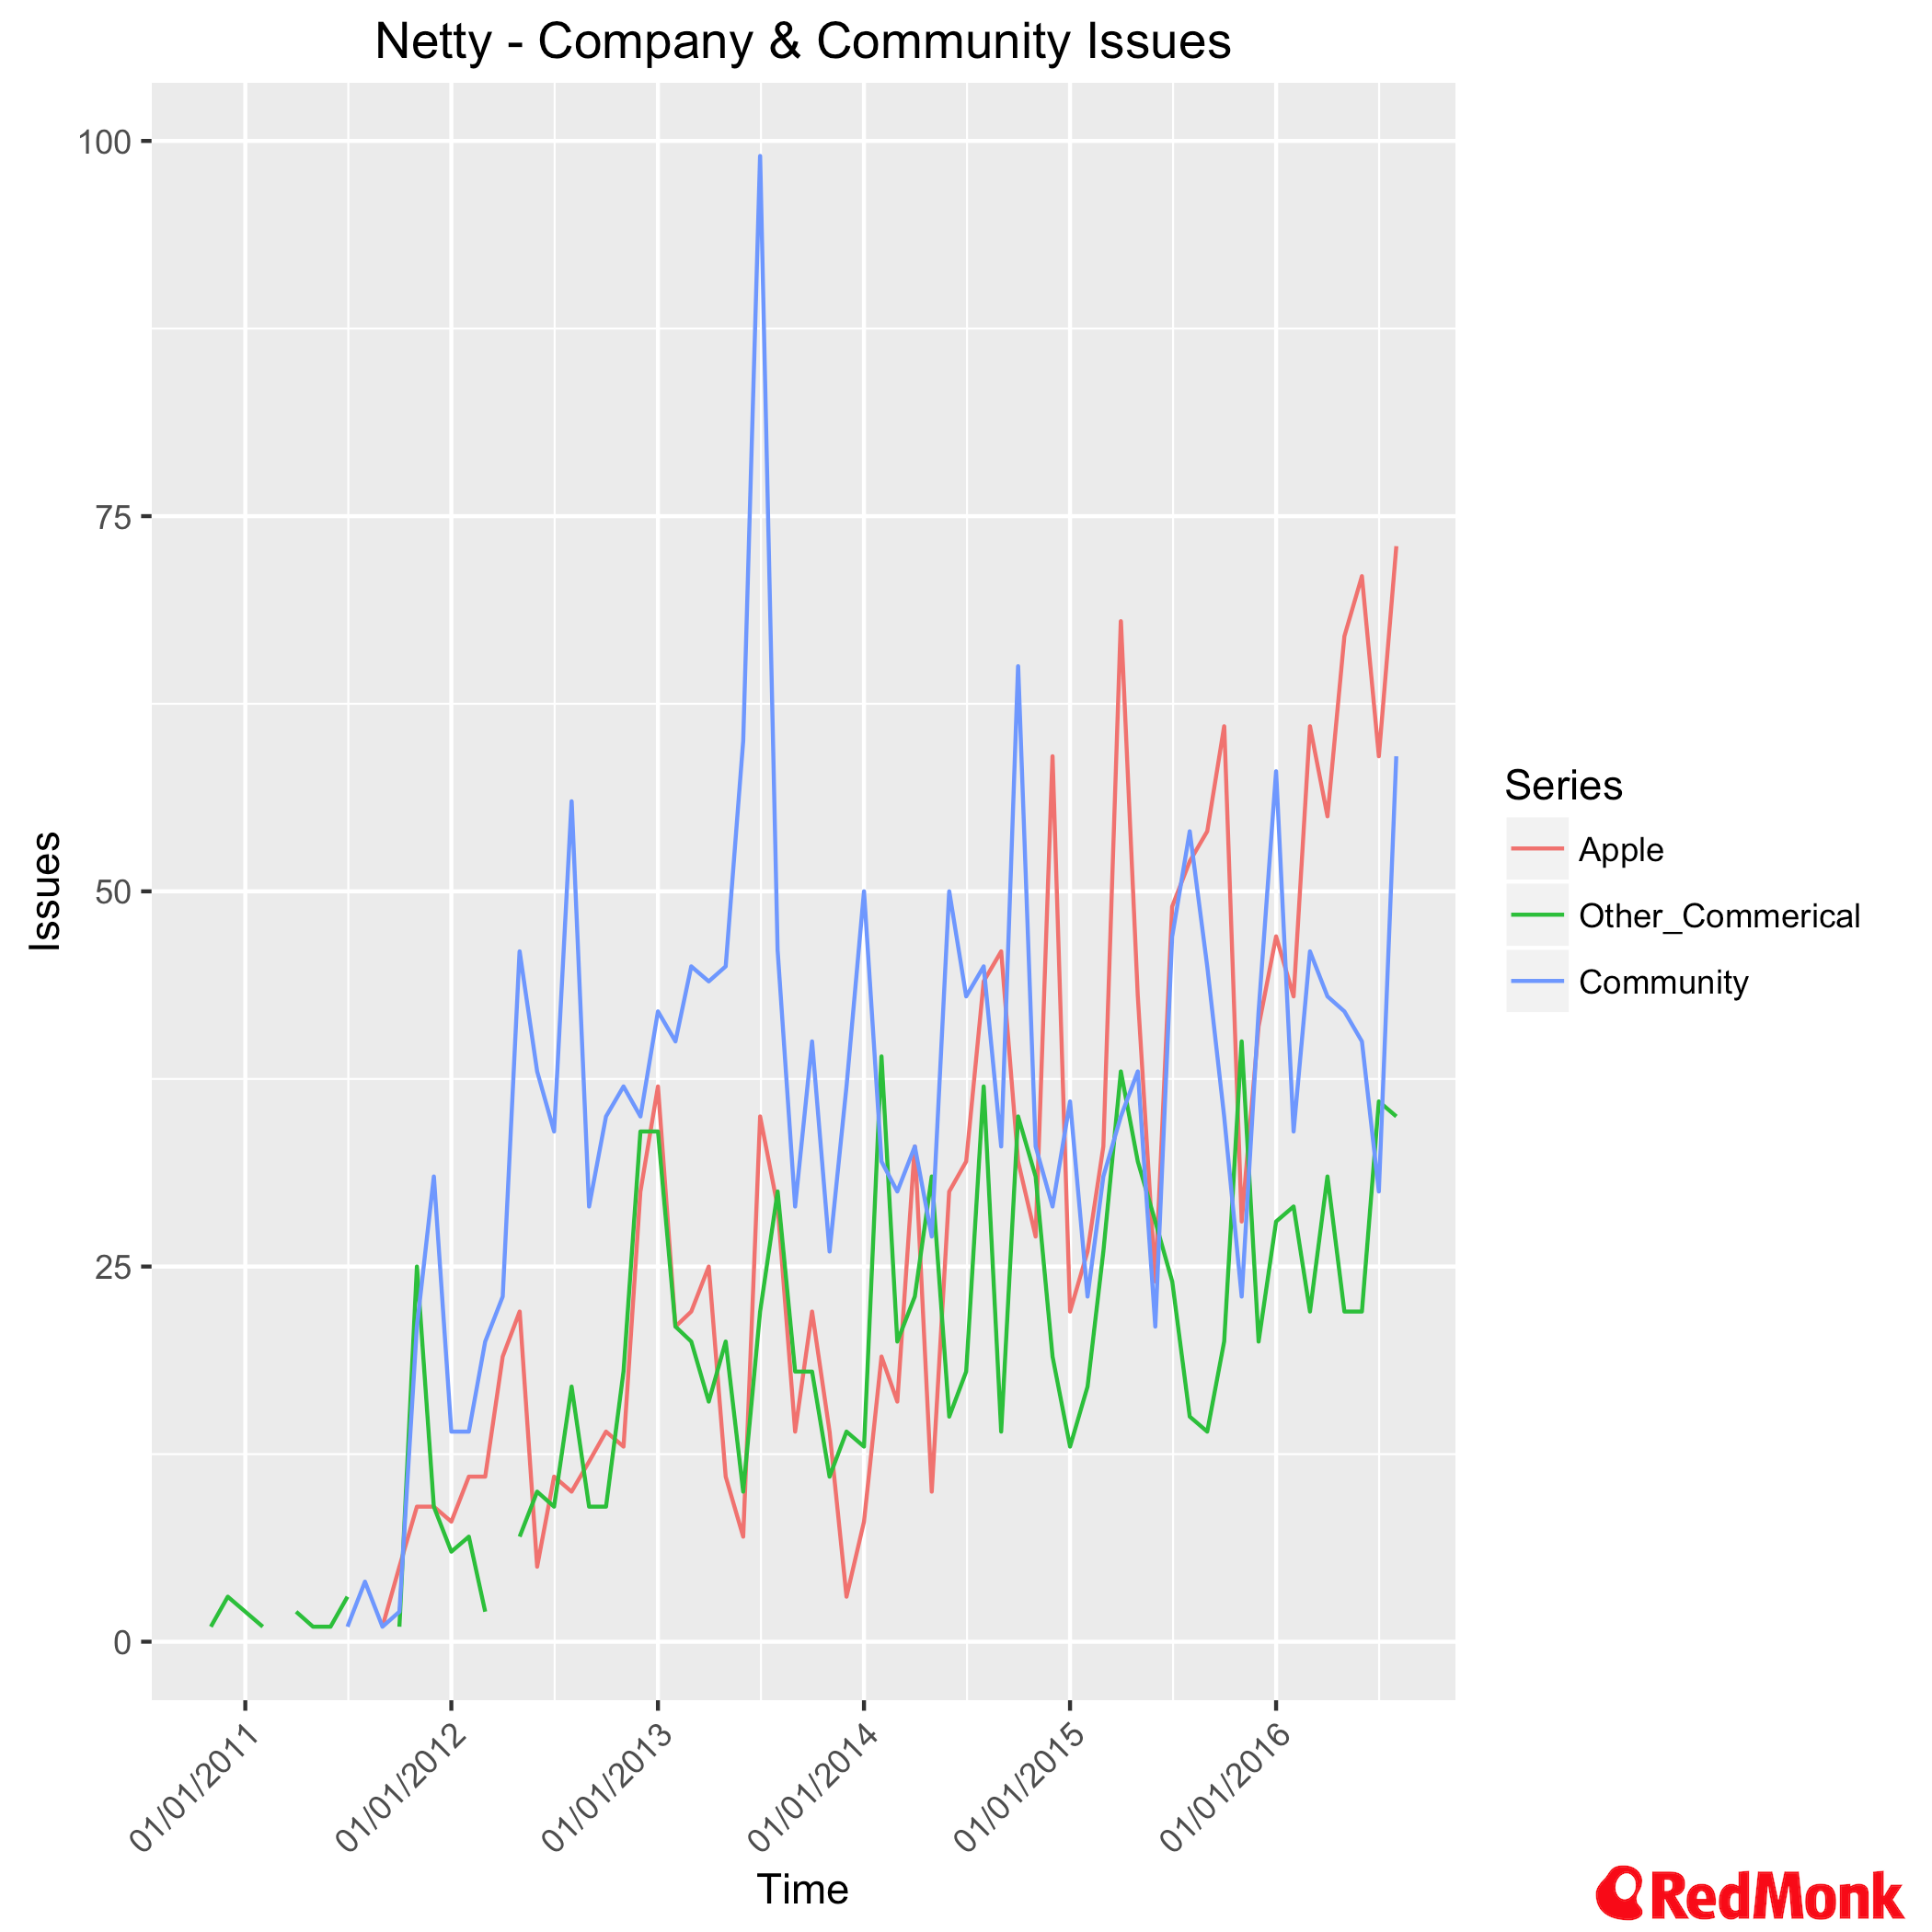 Netty - Company & Community Issues